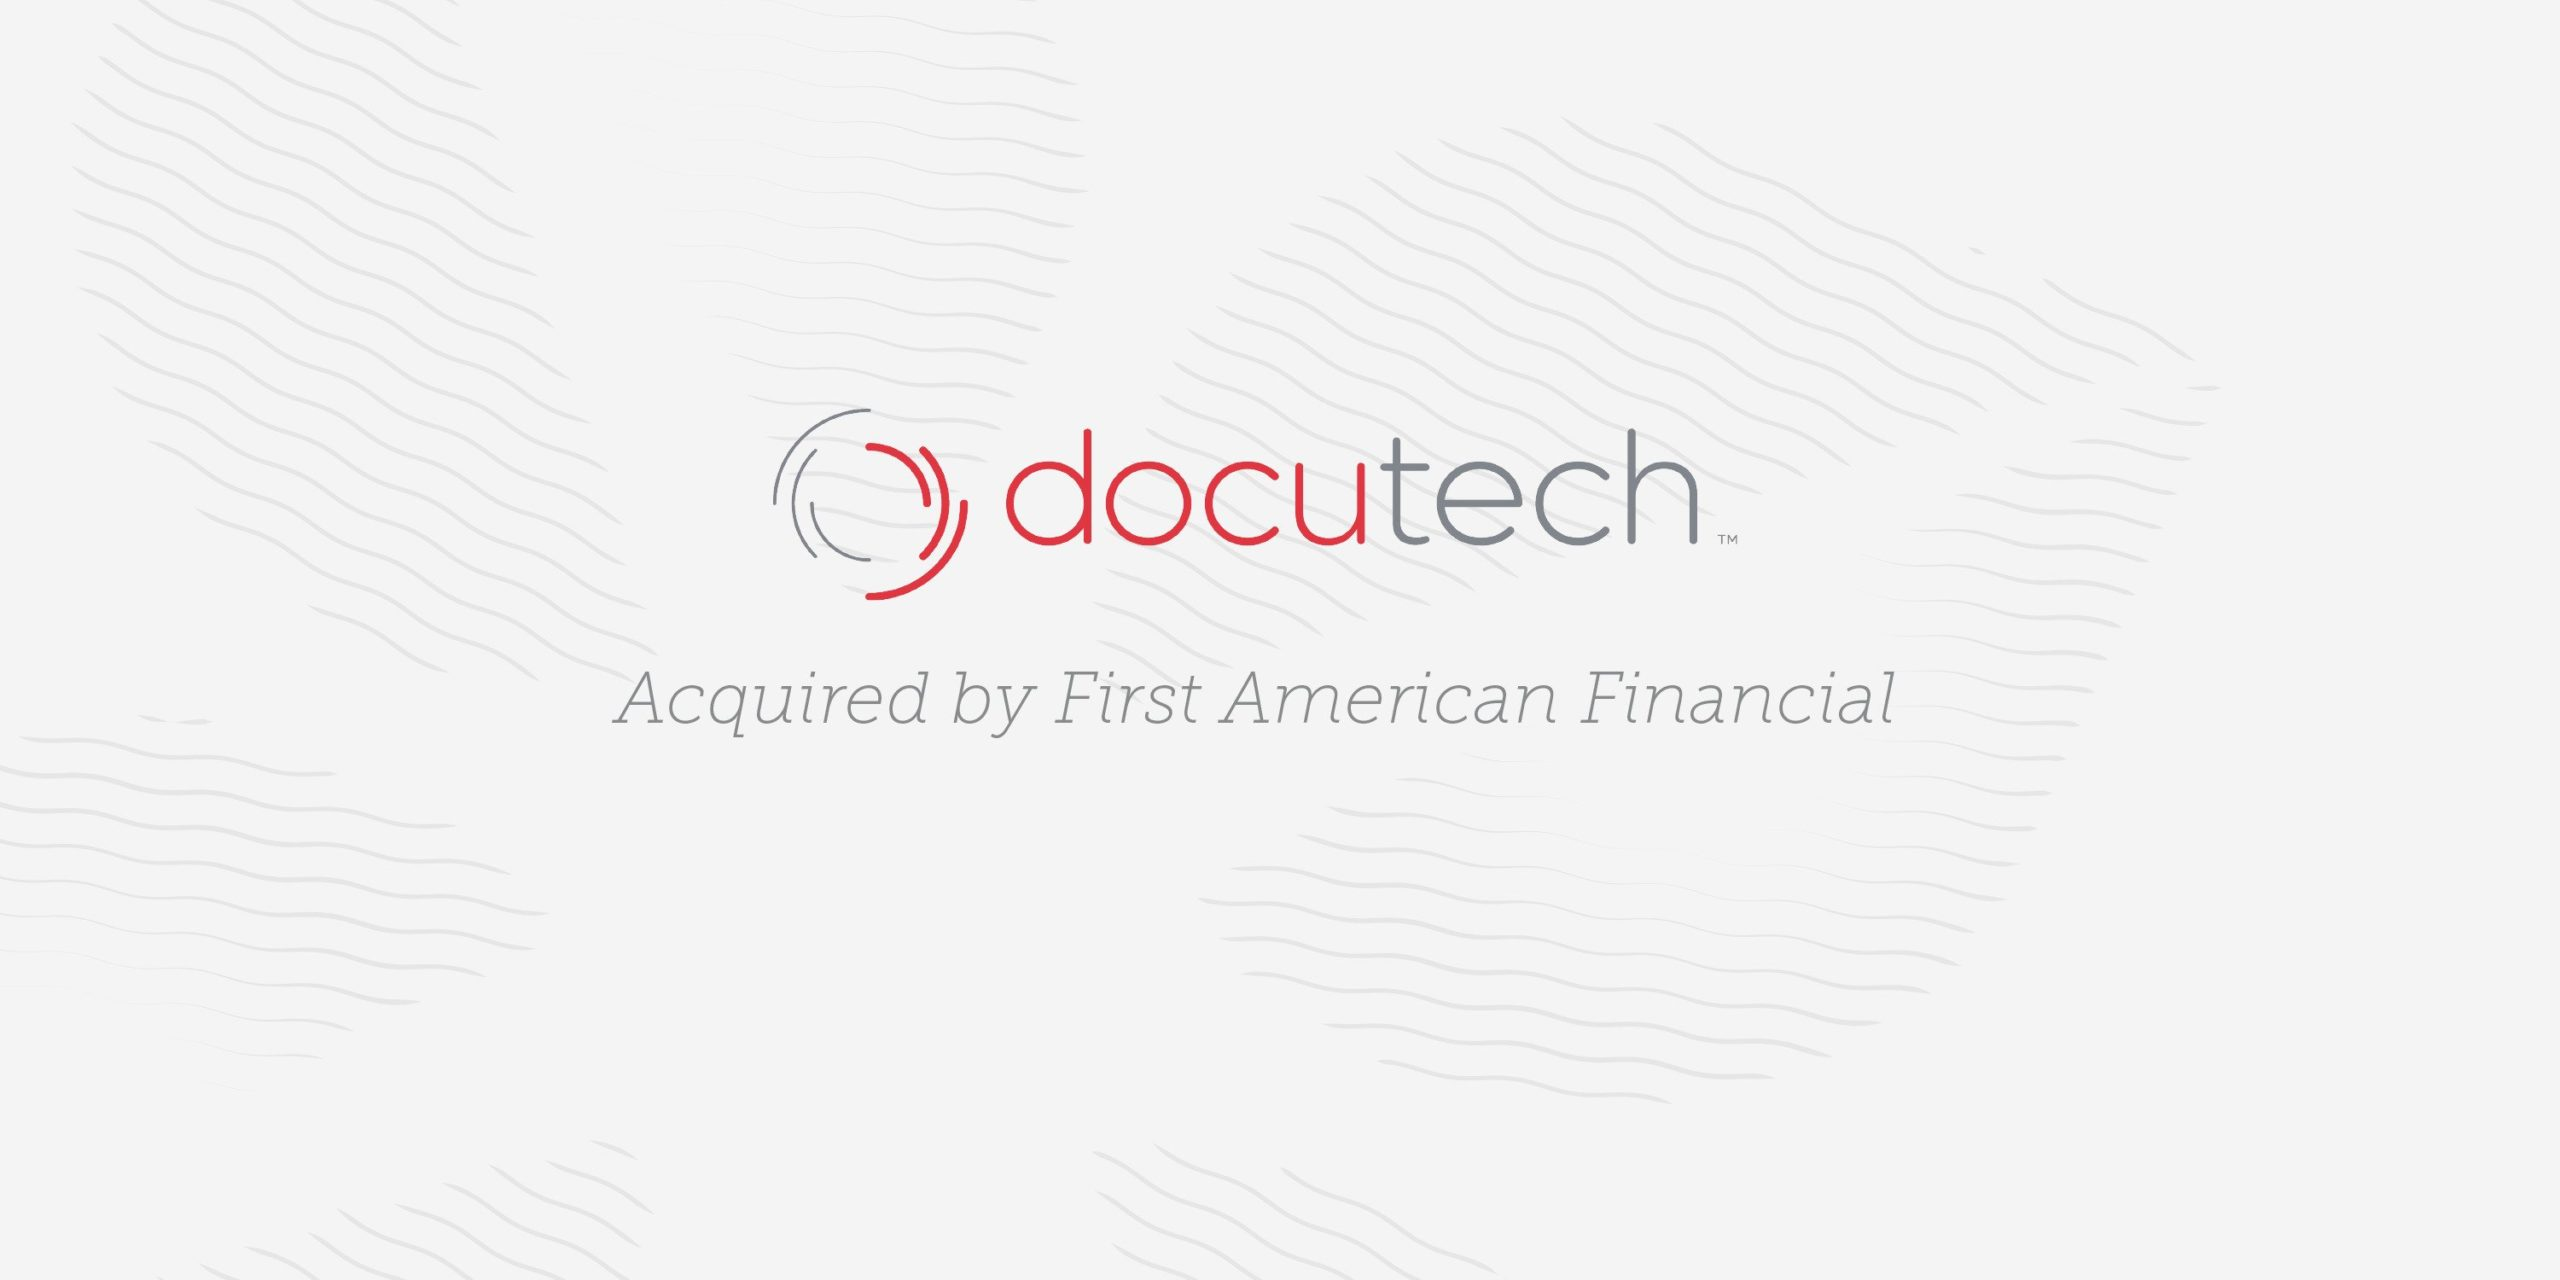 Docutech, a Leading Provider of Document, eClose and Fulfillment Technology Solutions for Mortgage Lenders and a Serent Portfolio Company, Acquired by First American for $350 Million